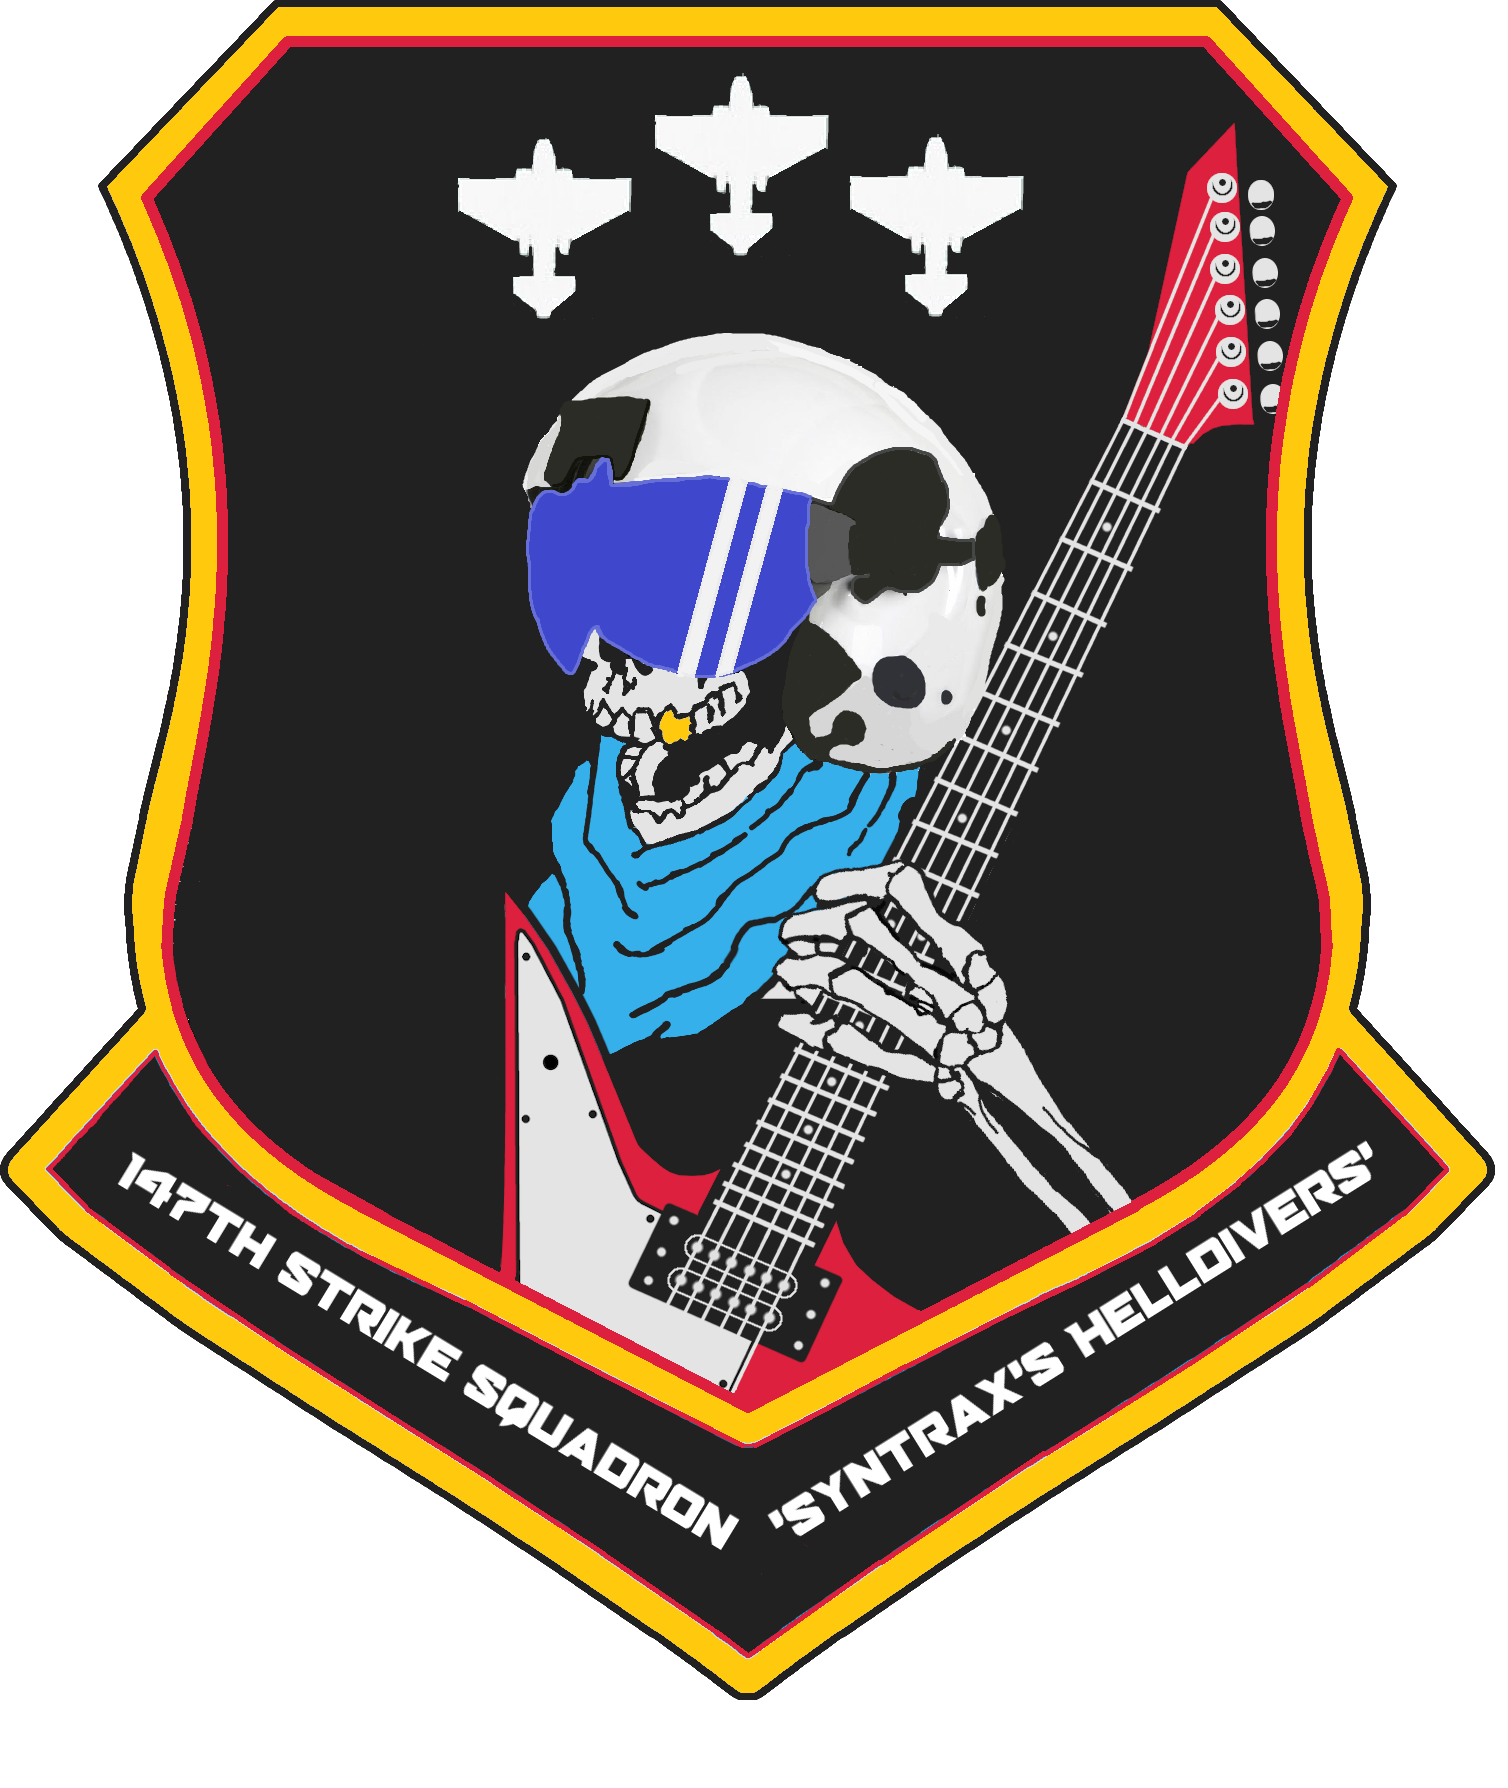 147th Syntraxian Strike Squadron